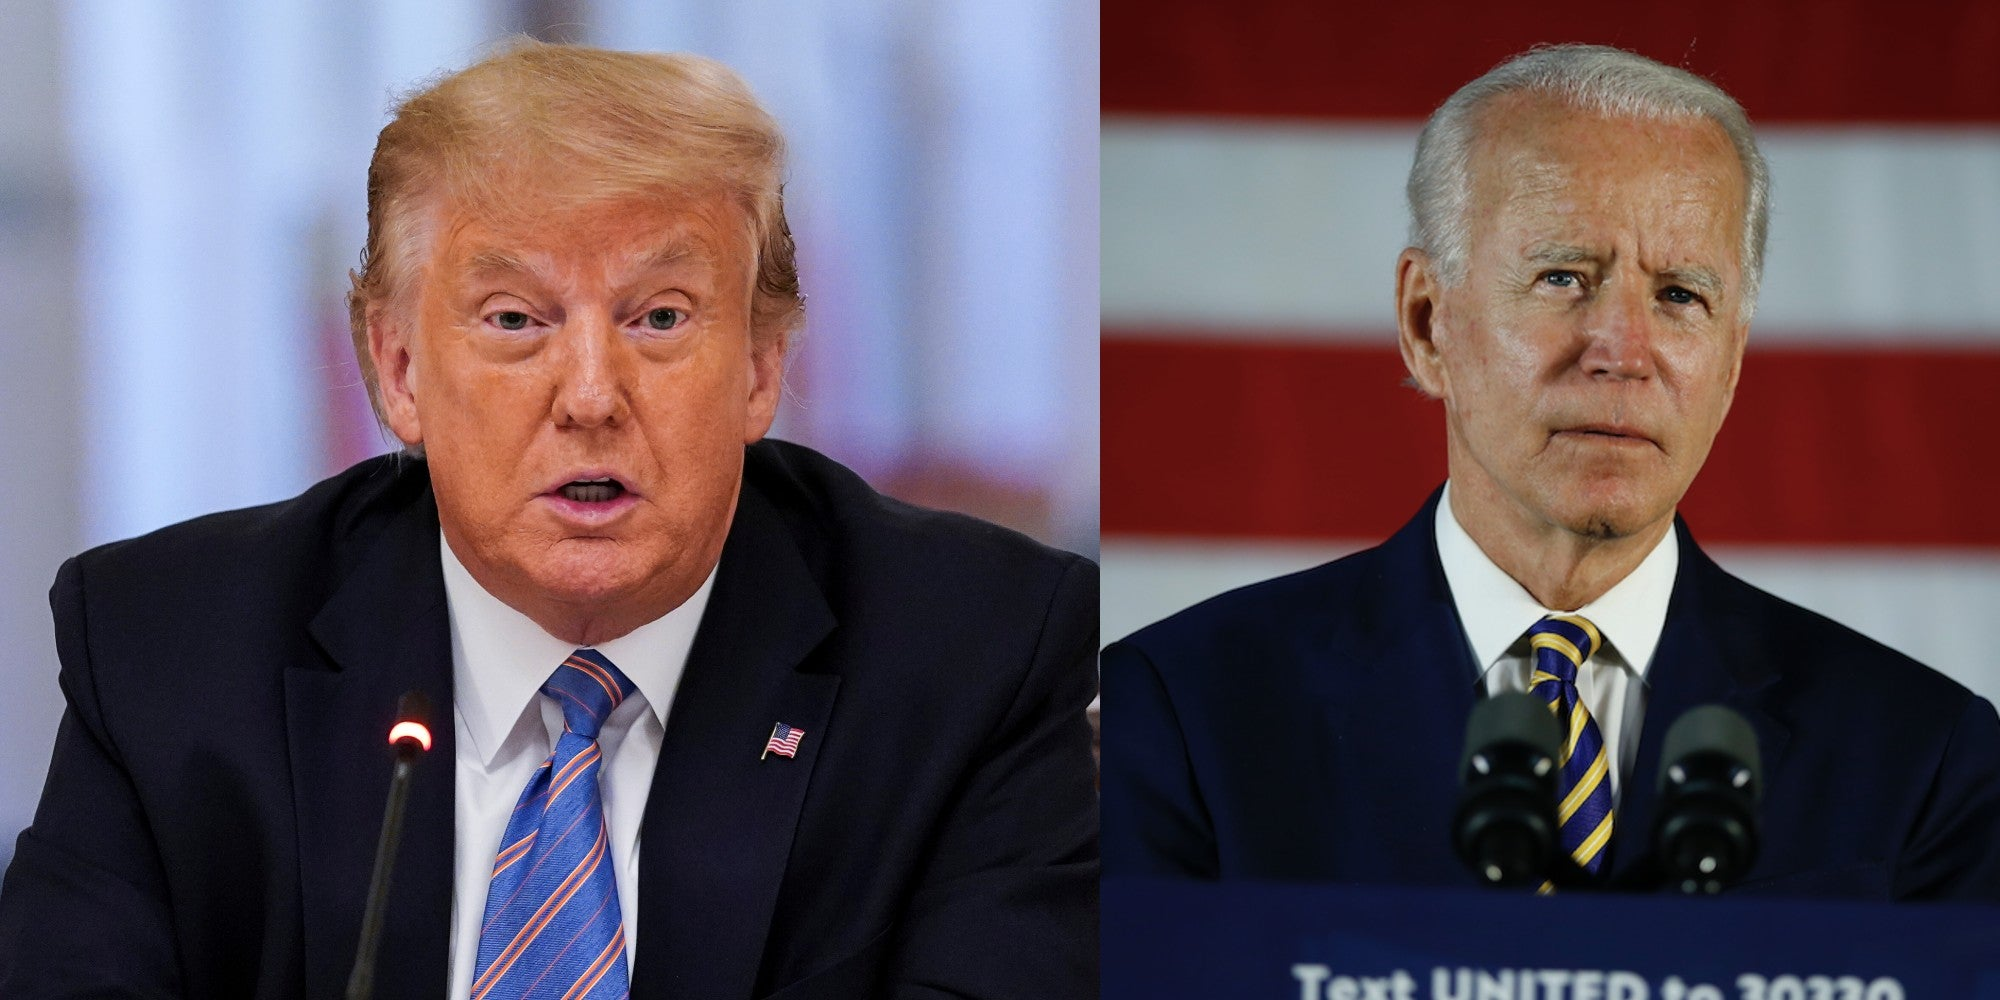 Trump just said people shouldn't vote for Joe Biden because TV ratings will fall